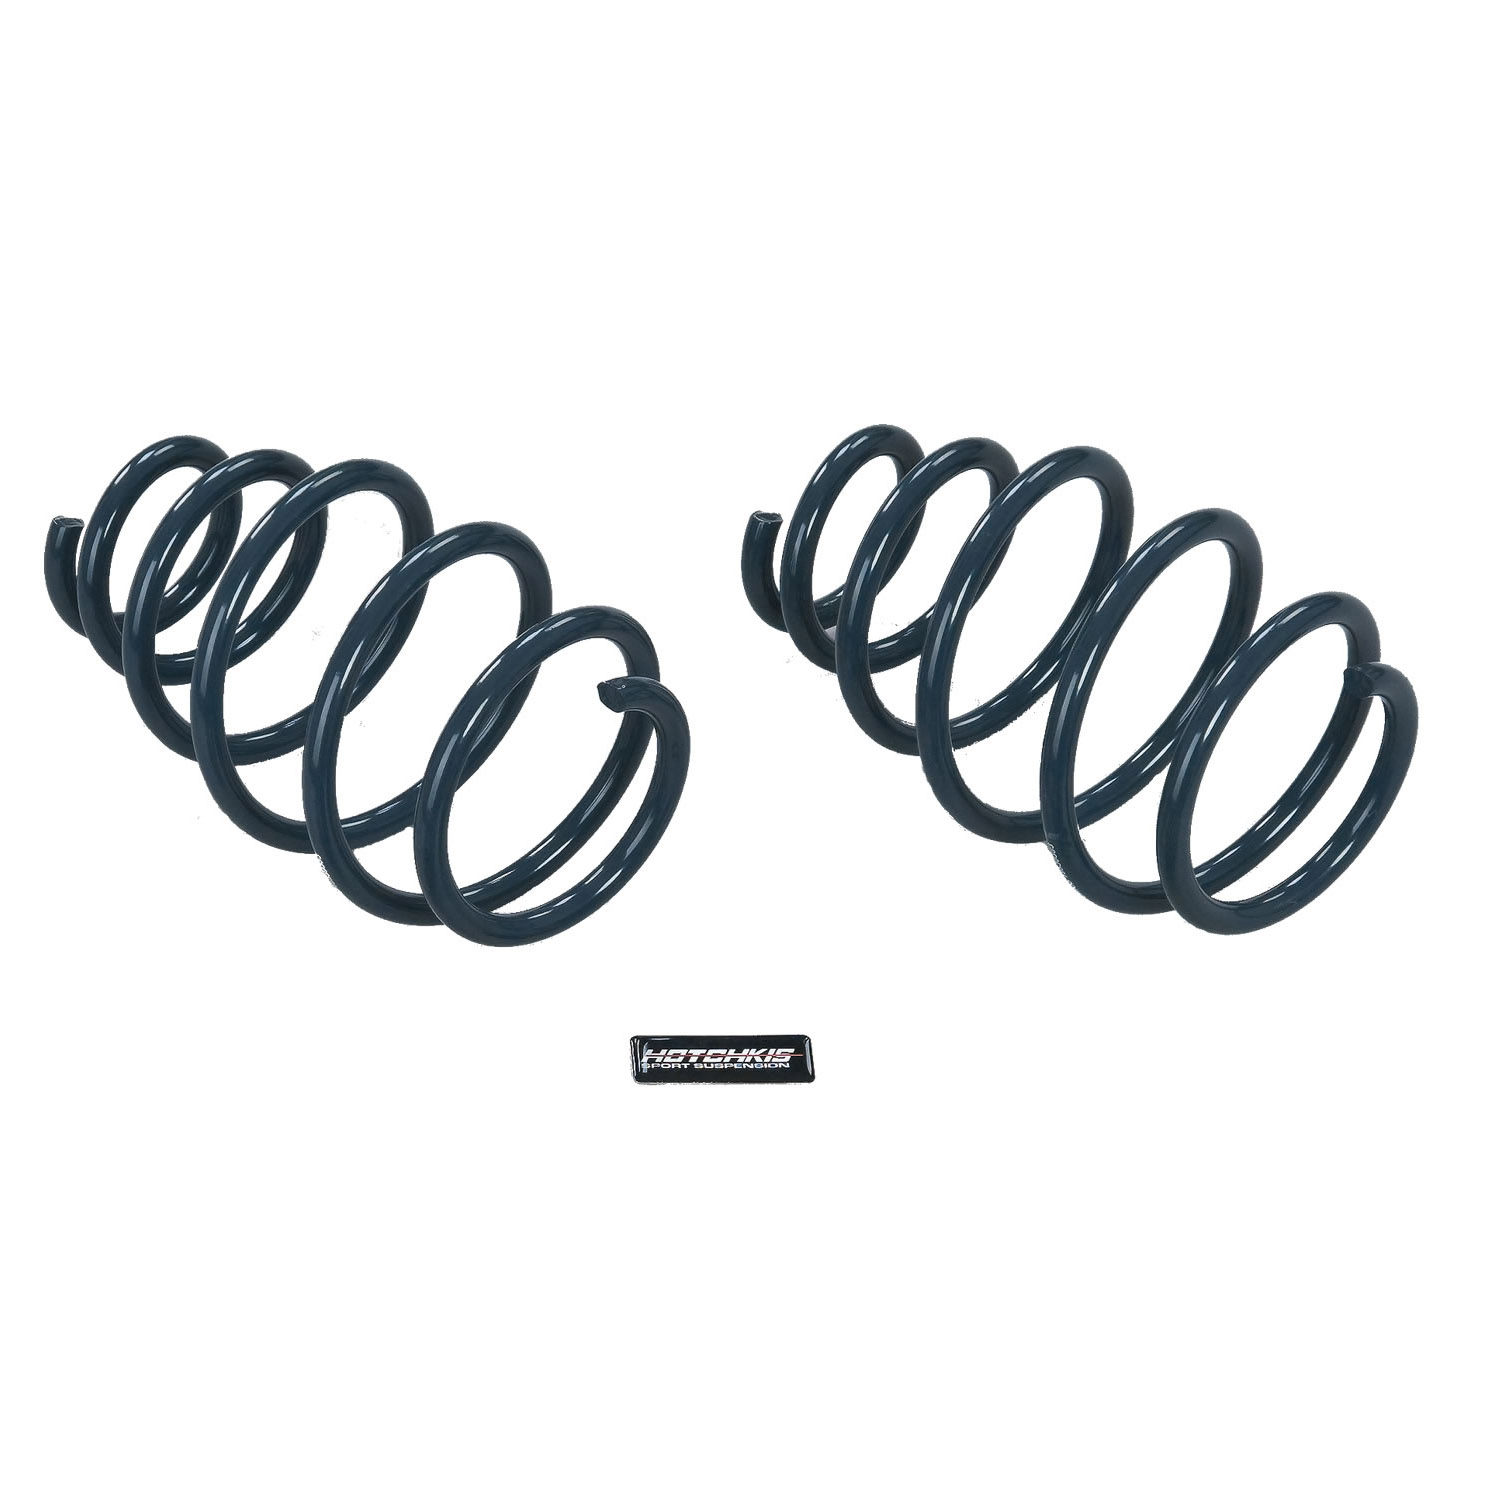 2010-2015 Camaro Sport Coil Springs from Hotchkis Sport Suspension